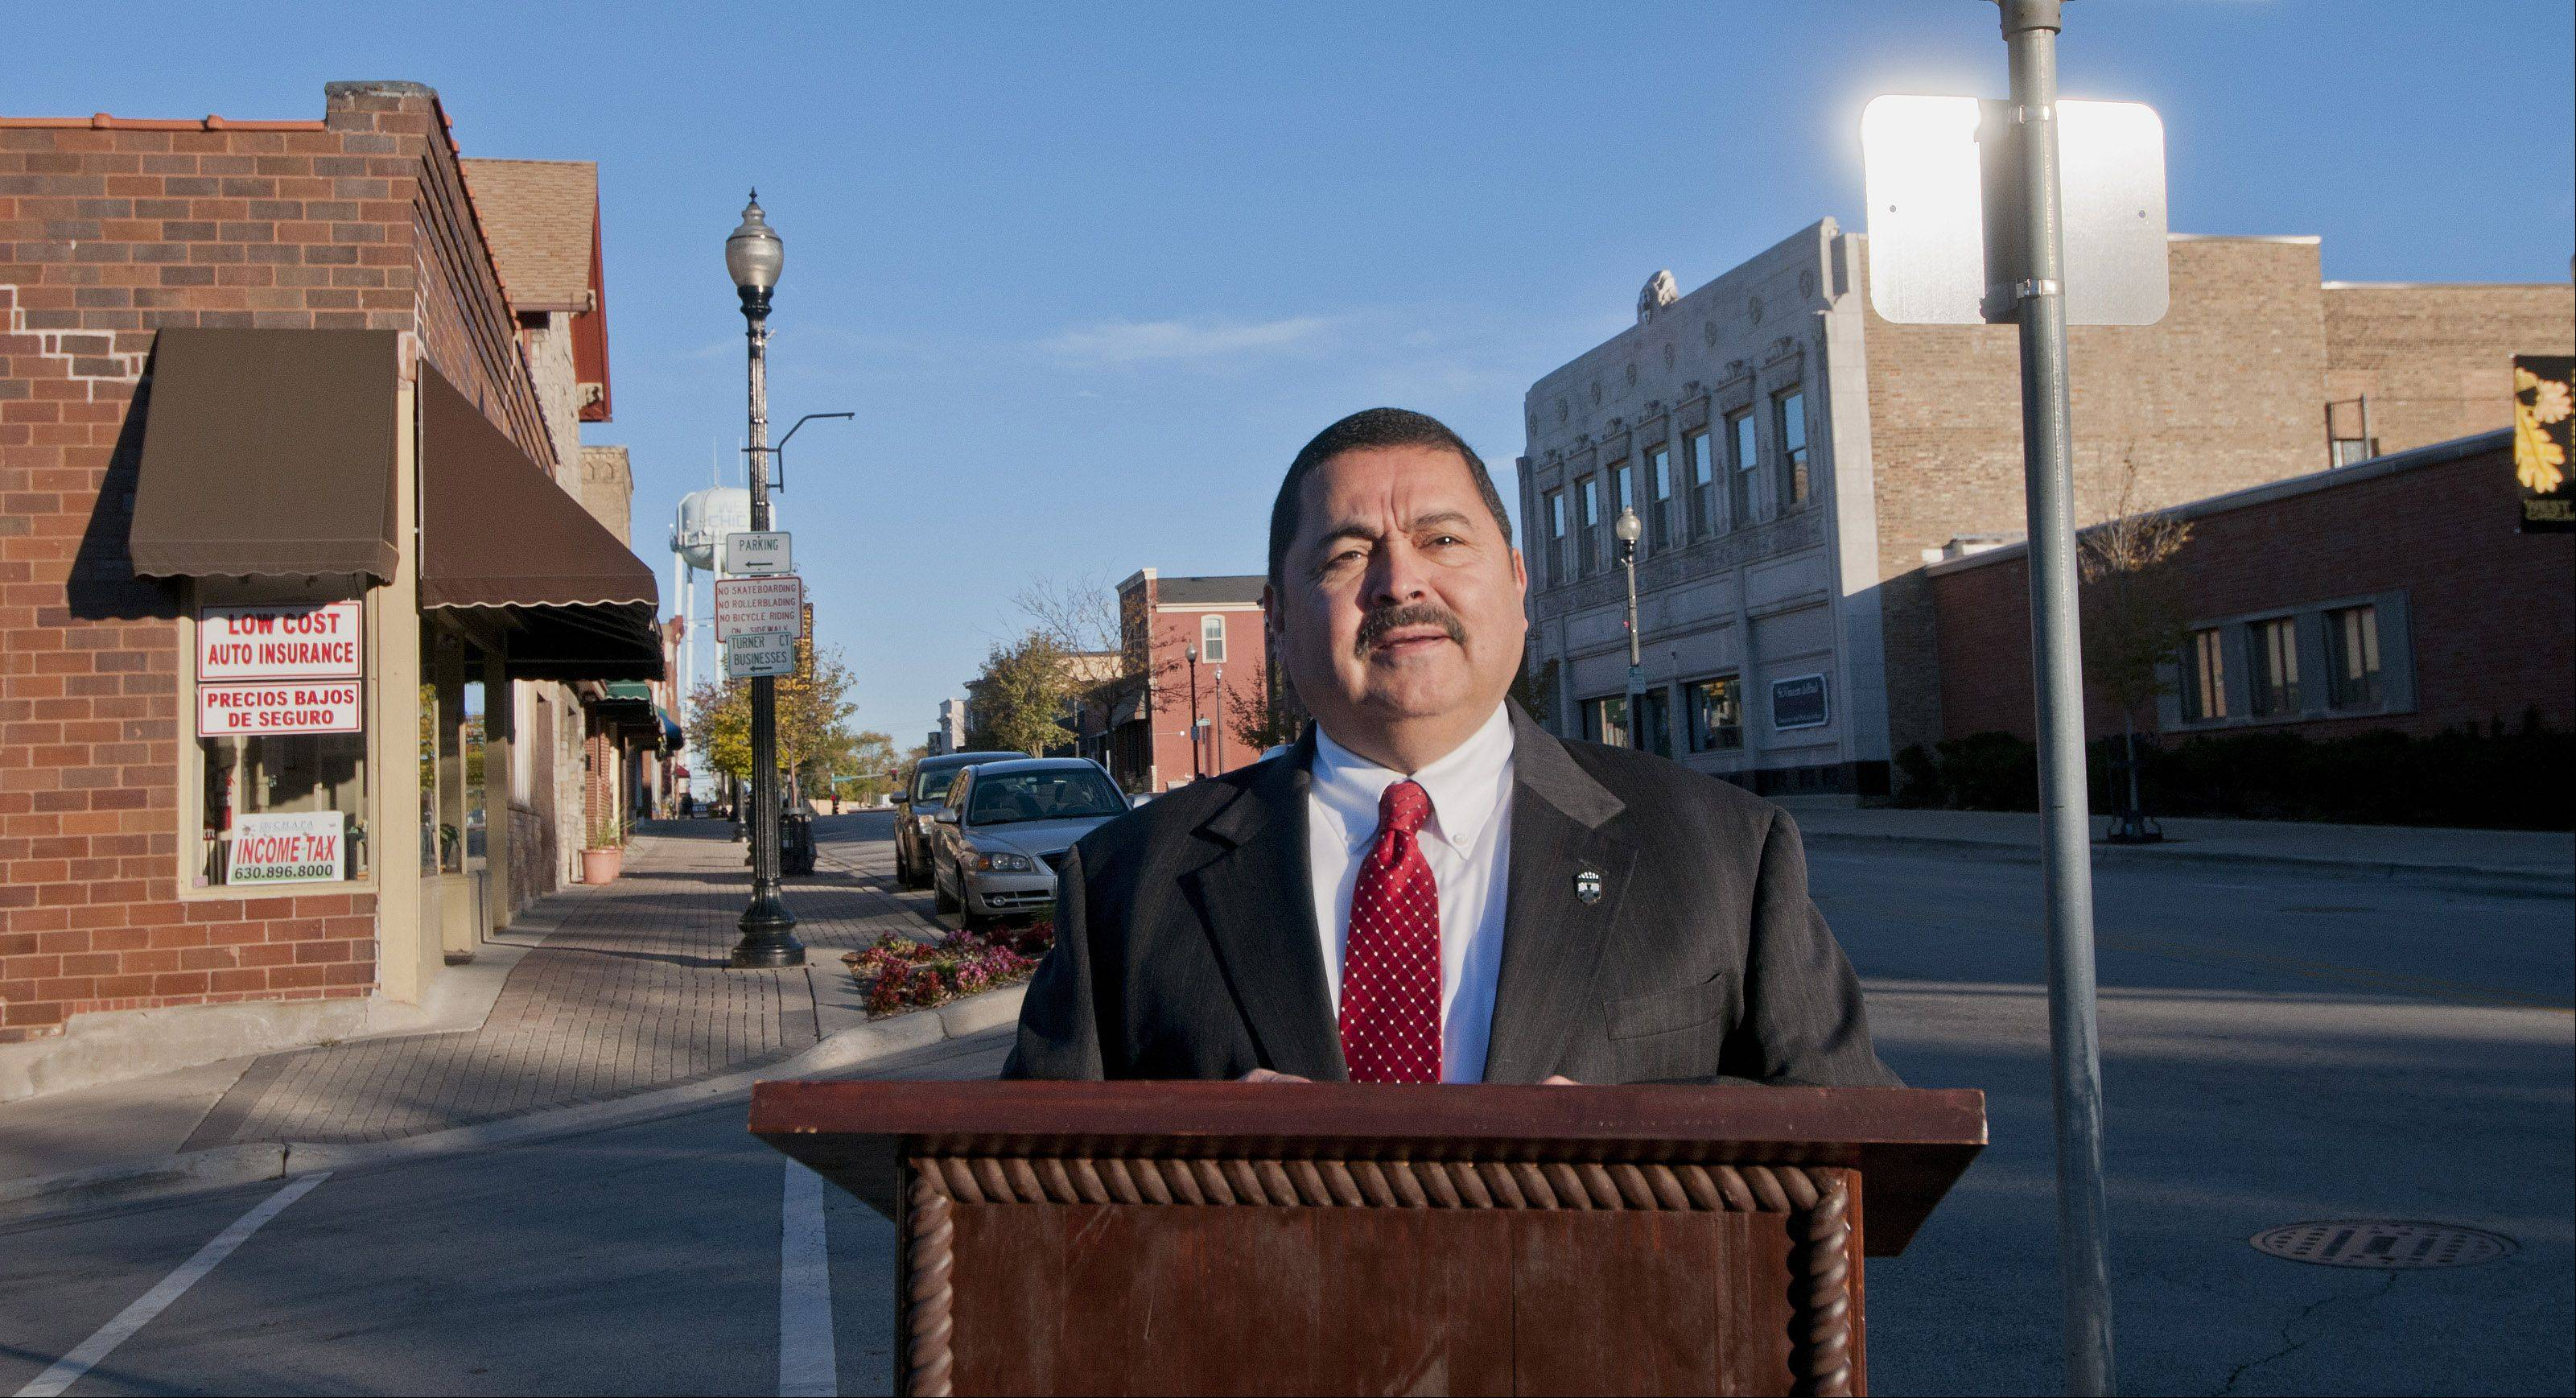 Ruben Pineda became the first Hispanic mayor in West Chicago history when he replaced Michael Kwasman, who died earlier in the year.